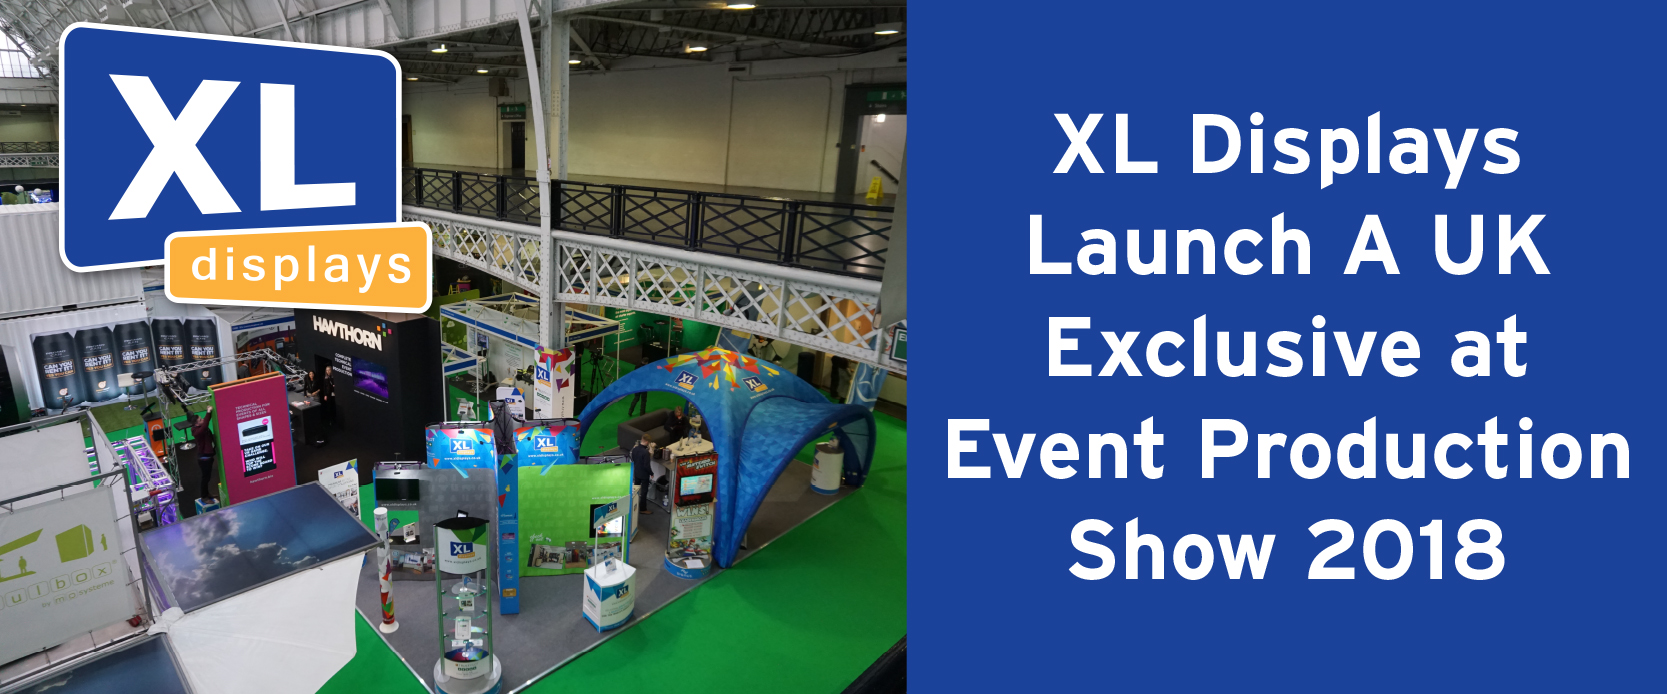 XL Displays Launch A UK Exclusive at Event Production Show 2018